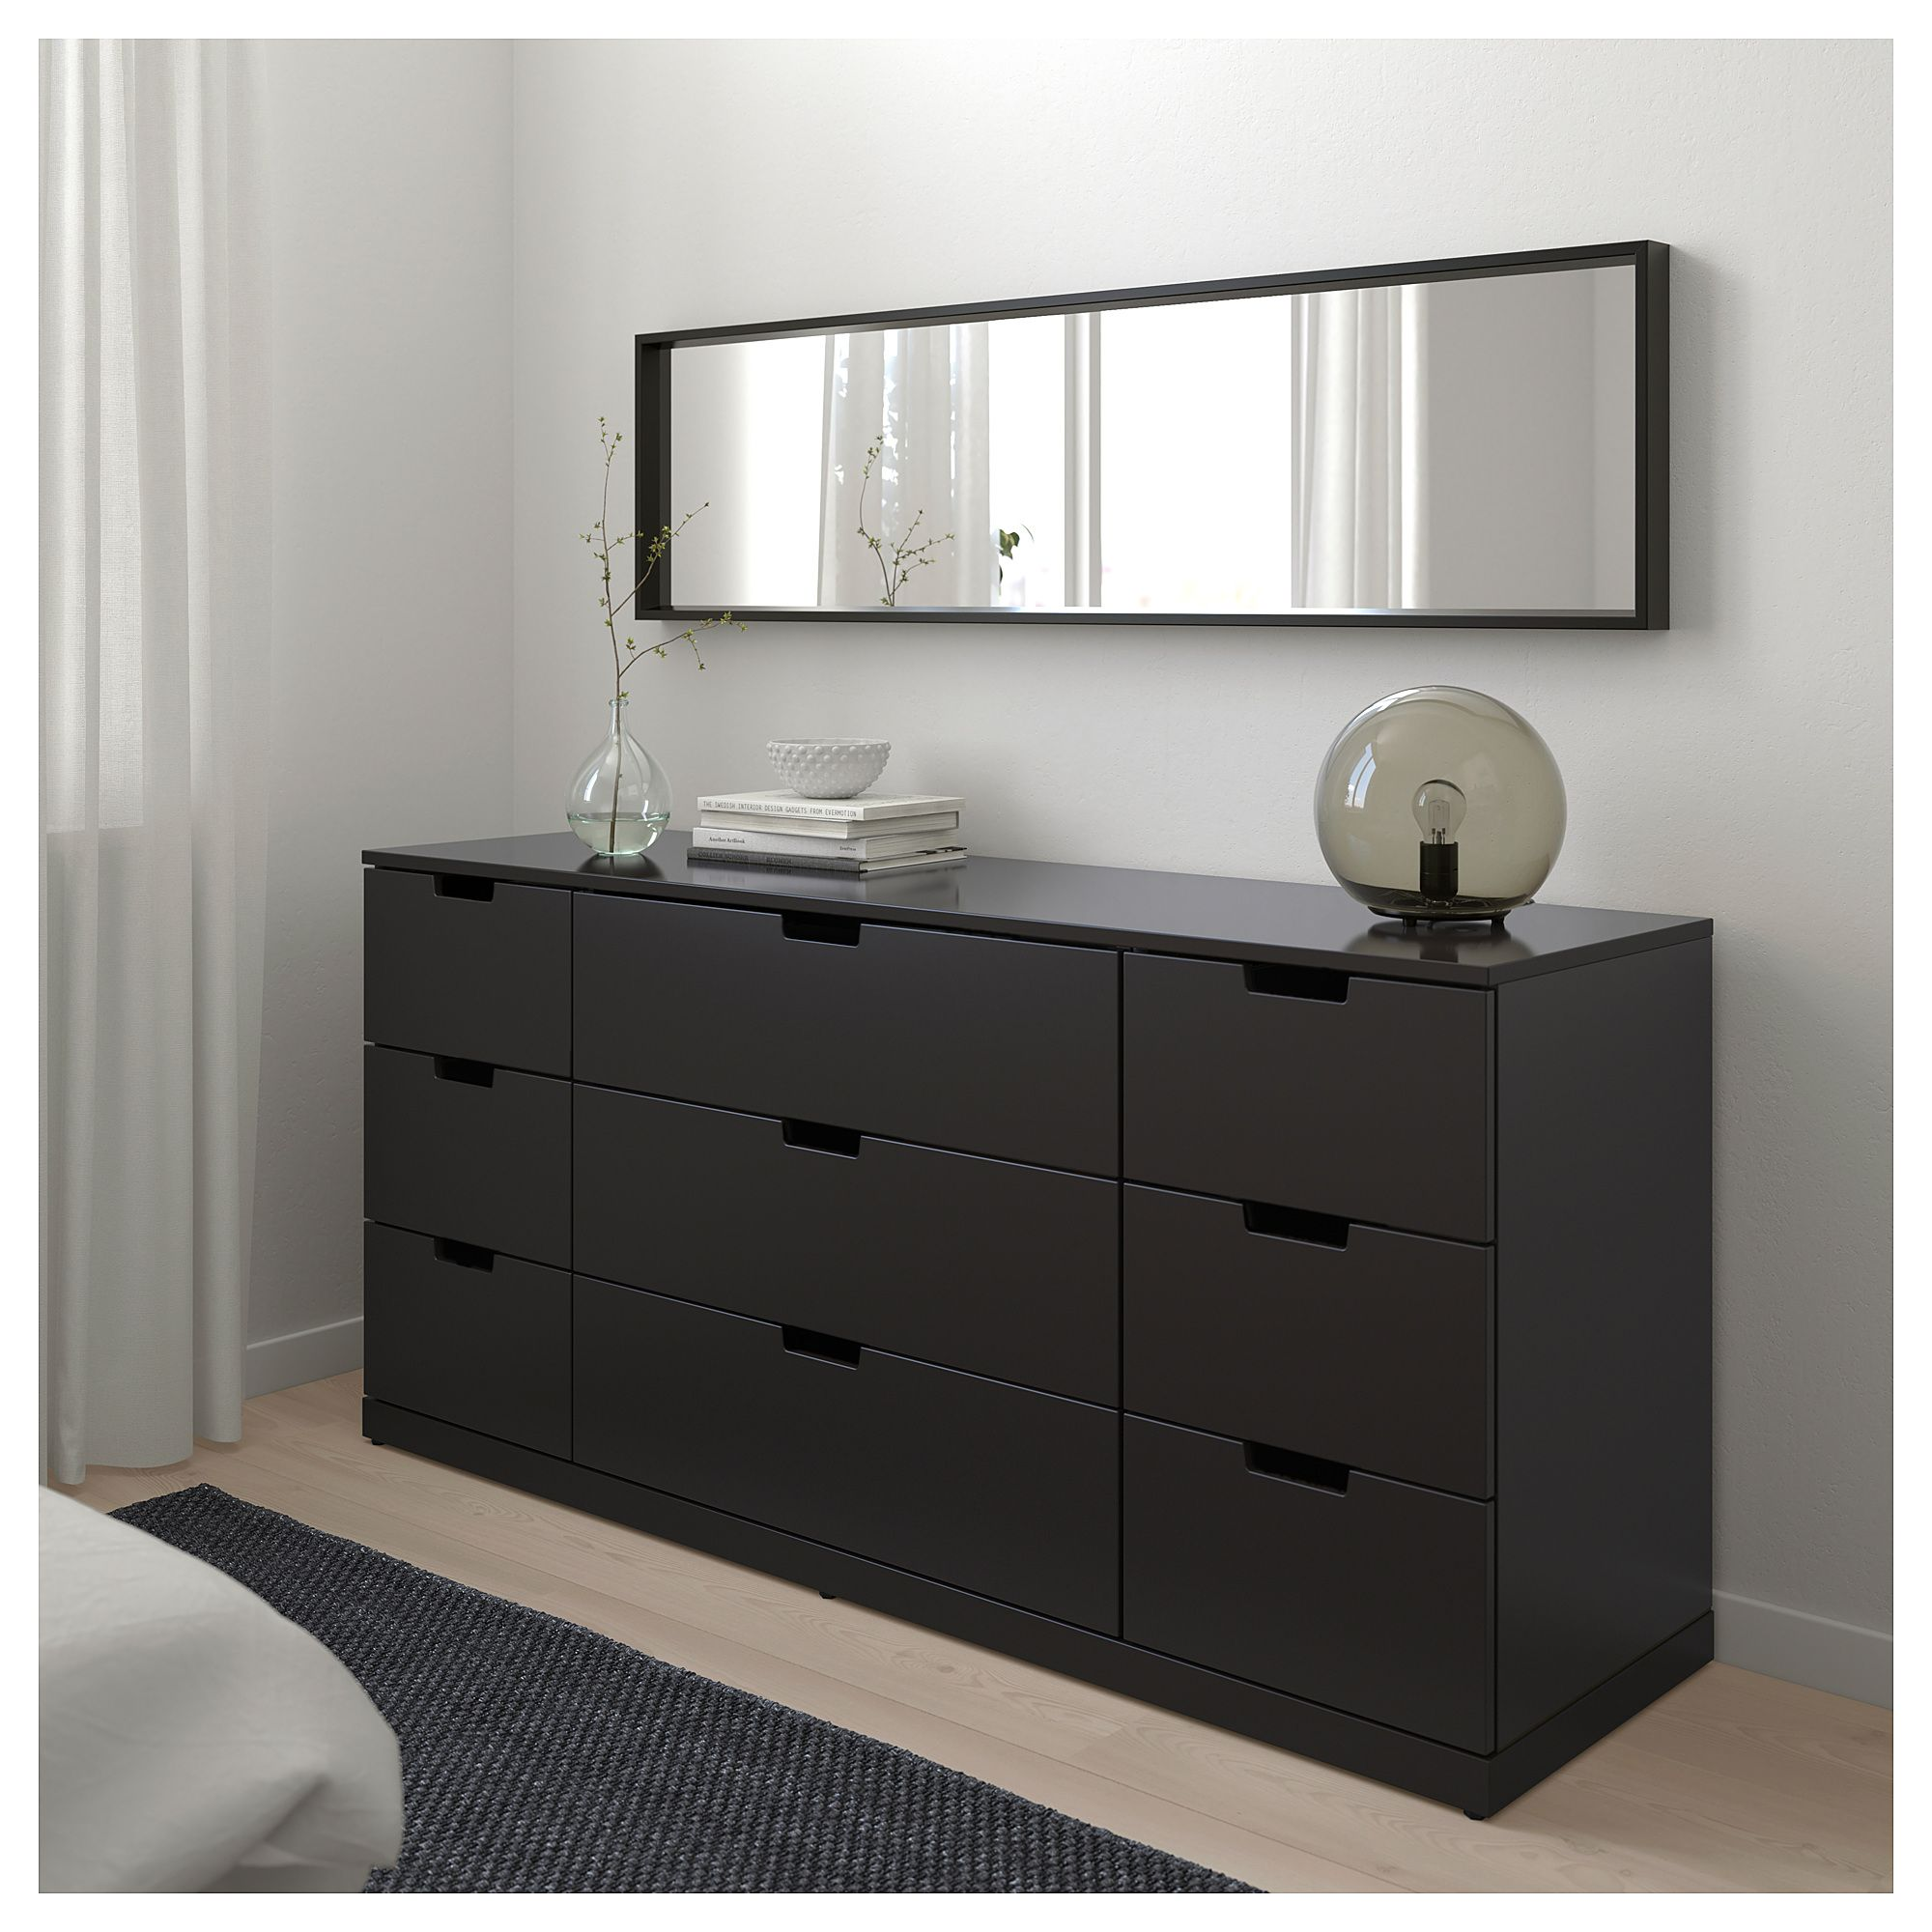 Malm Kommode Shabby Chic Ikea Nordli 9 Drawer Chest Anthracite In 2019 Home Ikea Malm